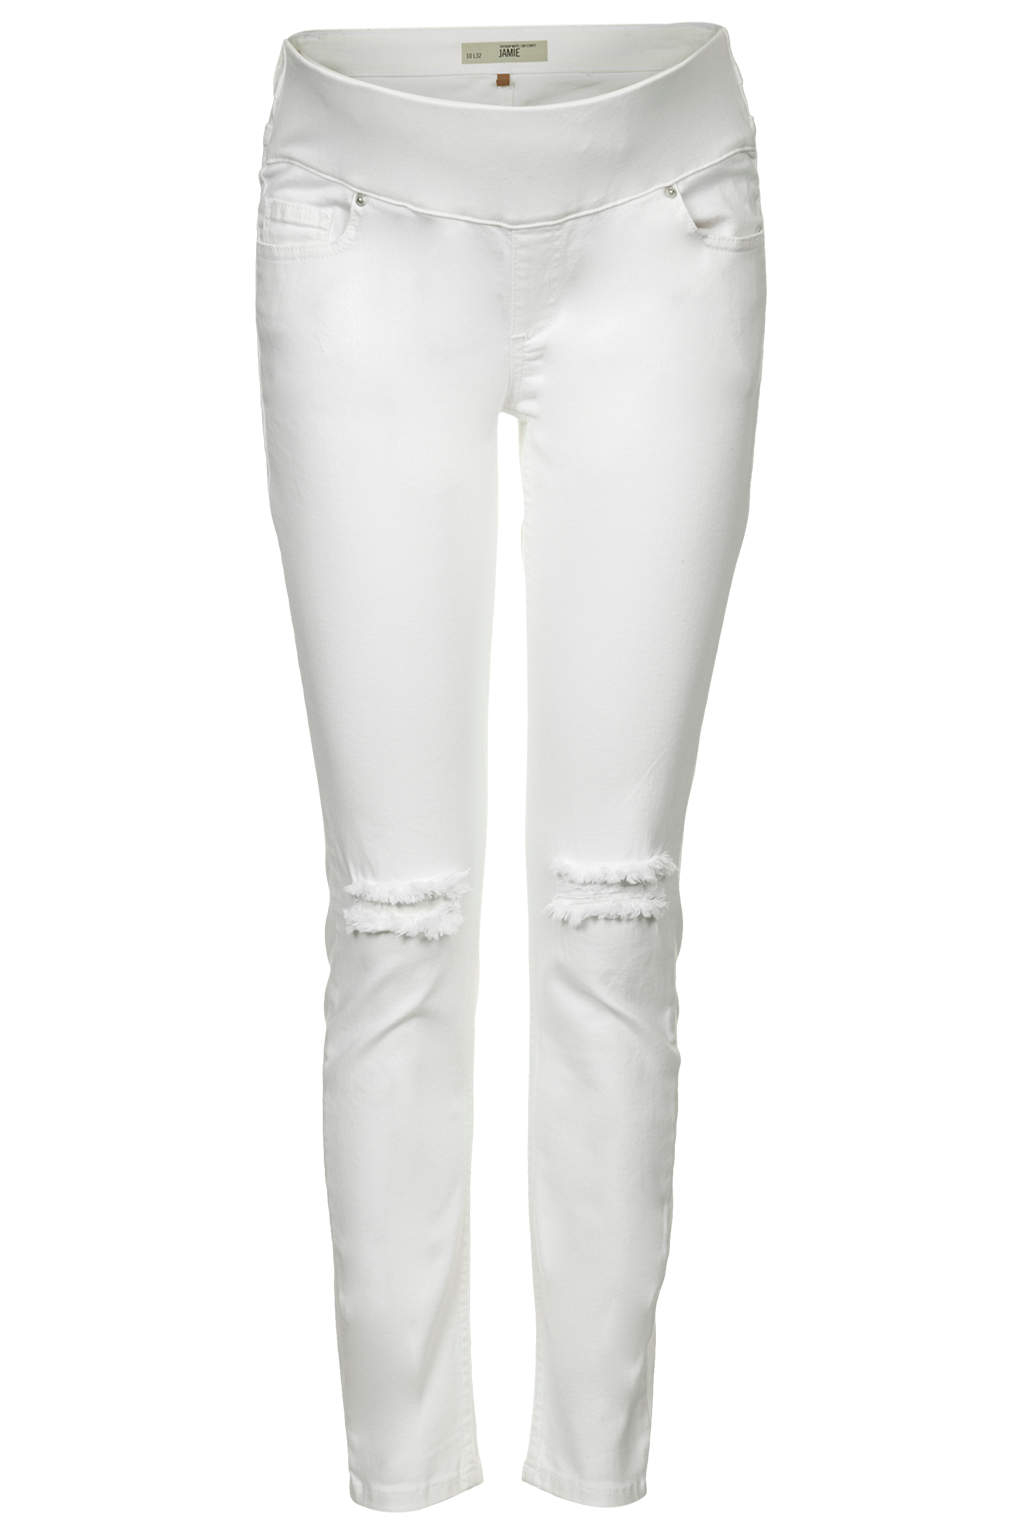 Topshop Maternity Moto White Ripped Jamie Jeans in White | Lyst